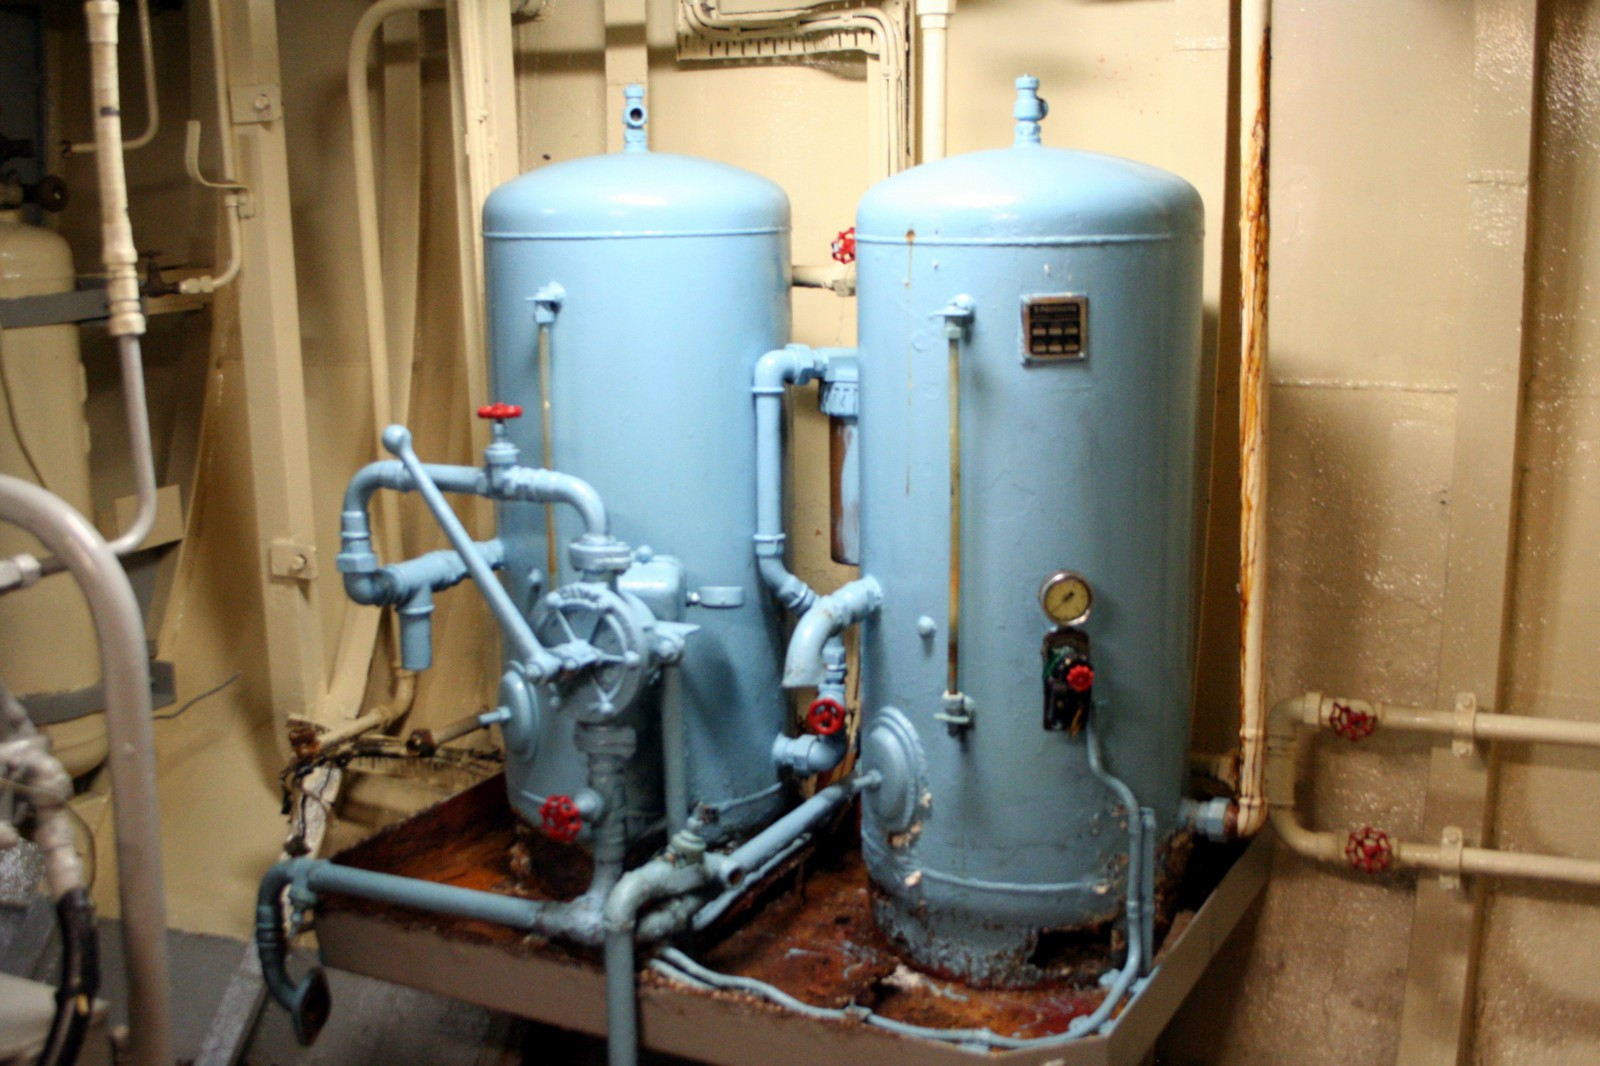 Are you planning a boiler installation in near future?